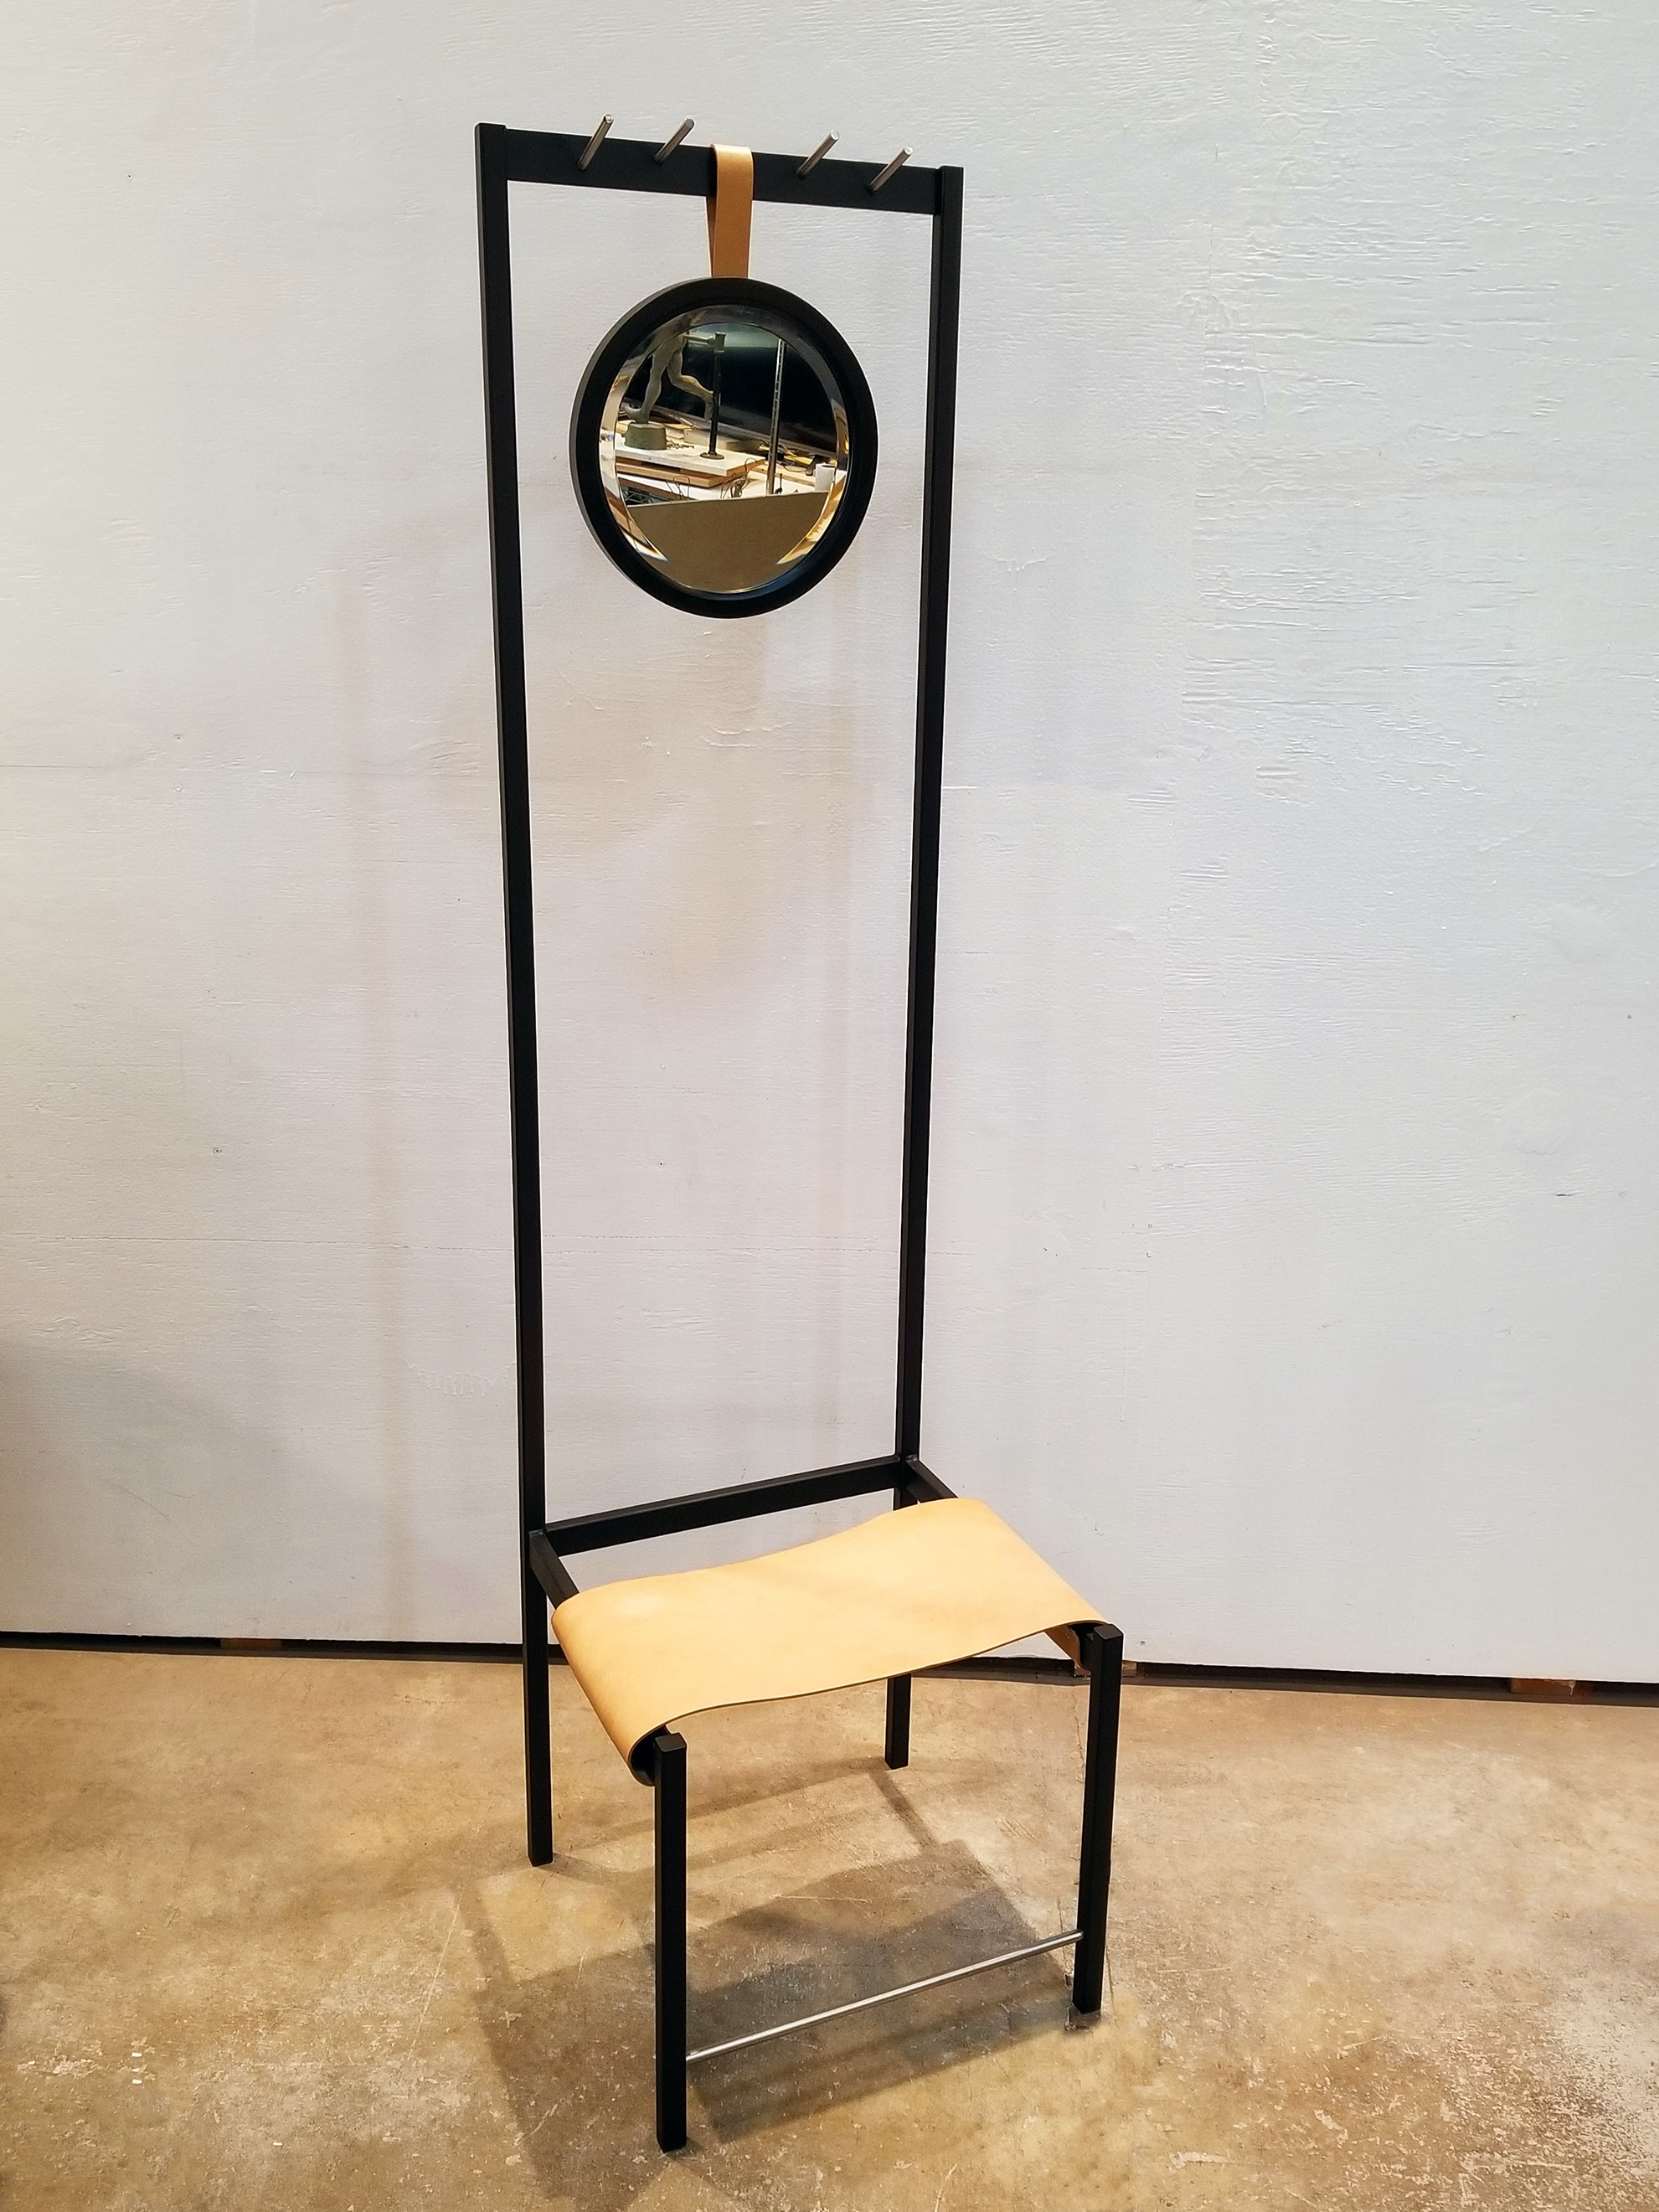 portfolio, entryway accessory chair with mirror and hooks